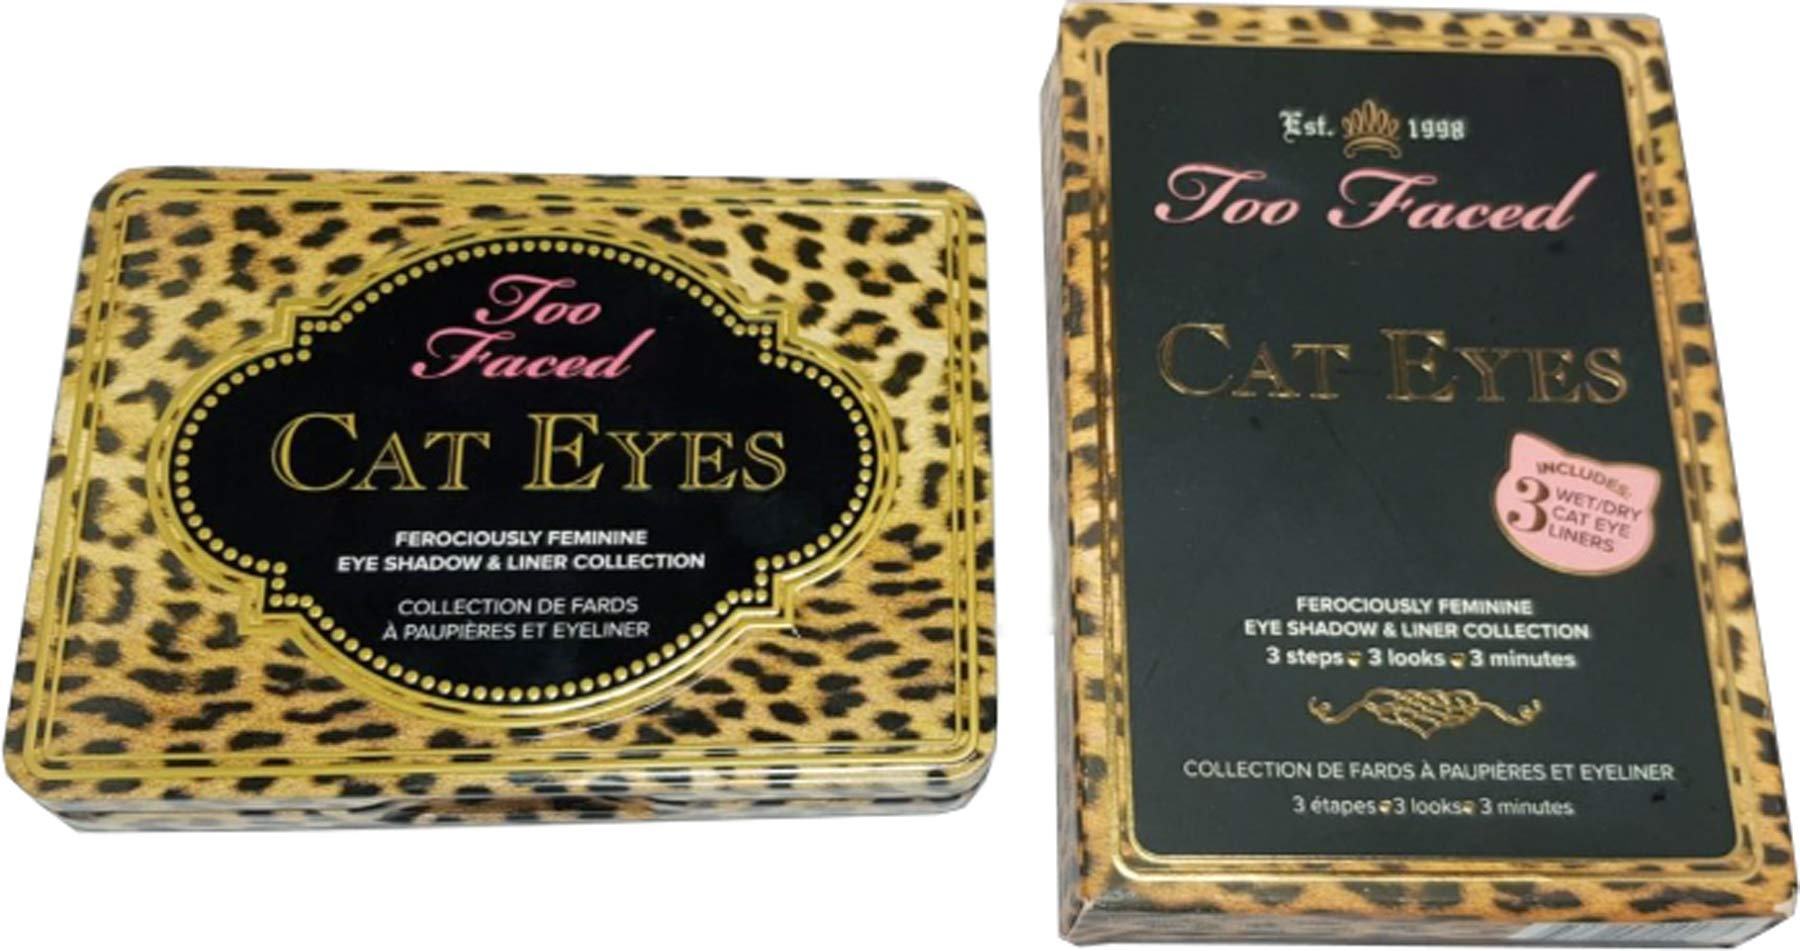 Too Faced - Too Faced Cat Eyes Eye Shadow & Liner Collection